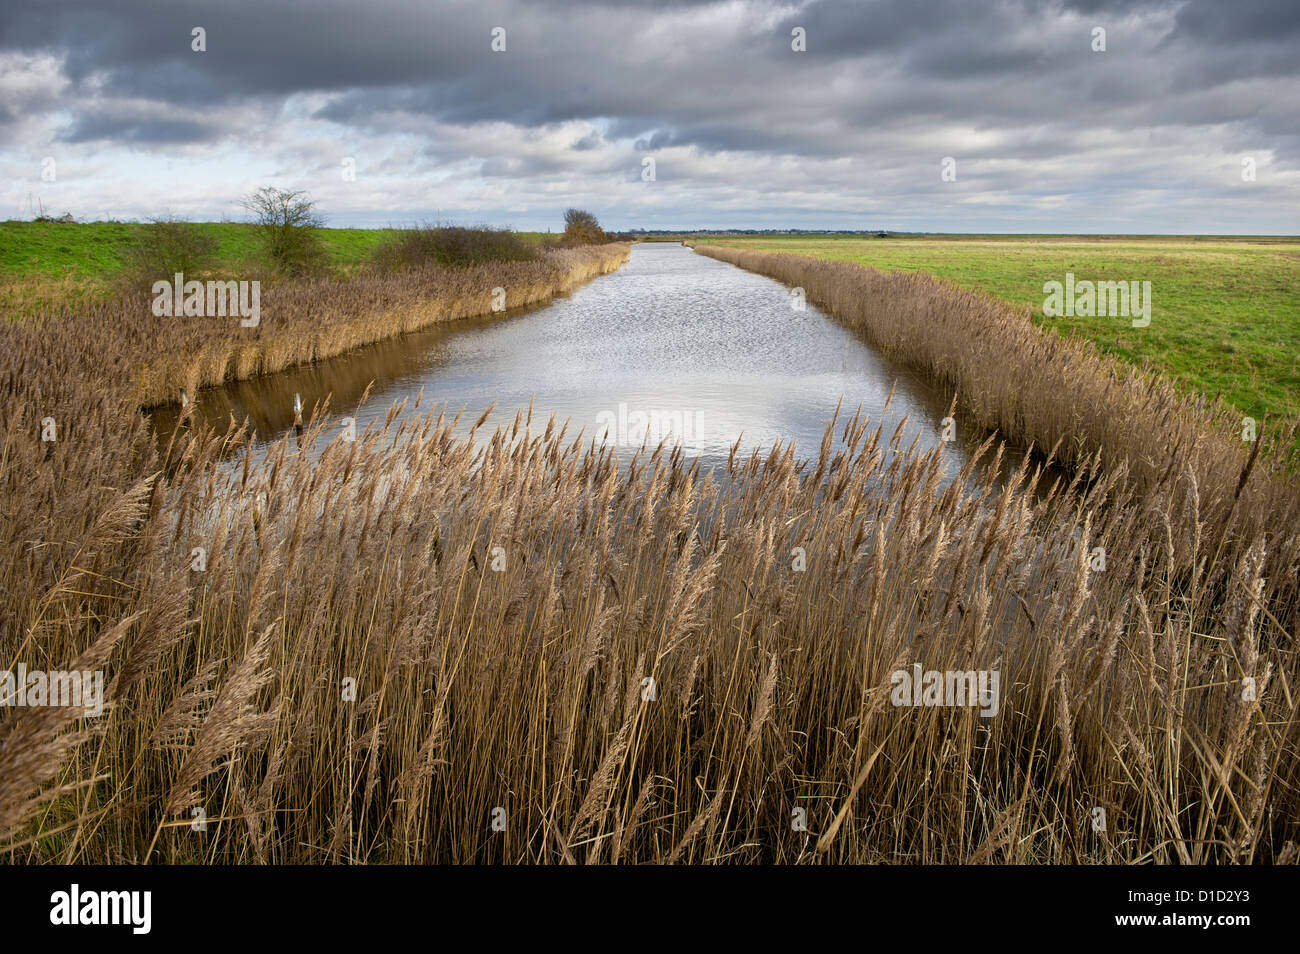 The main sluice in Tollesbury Wick Marshes in Essex. - Stock Image